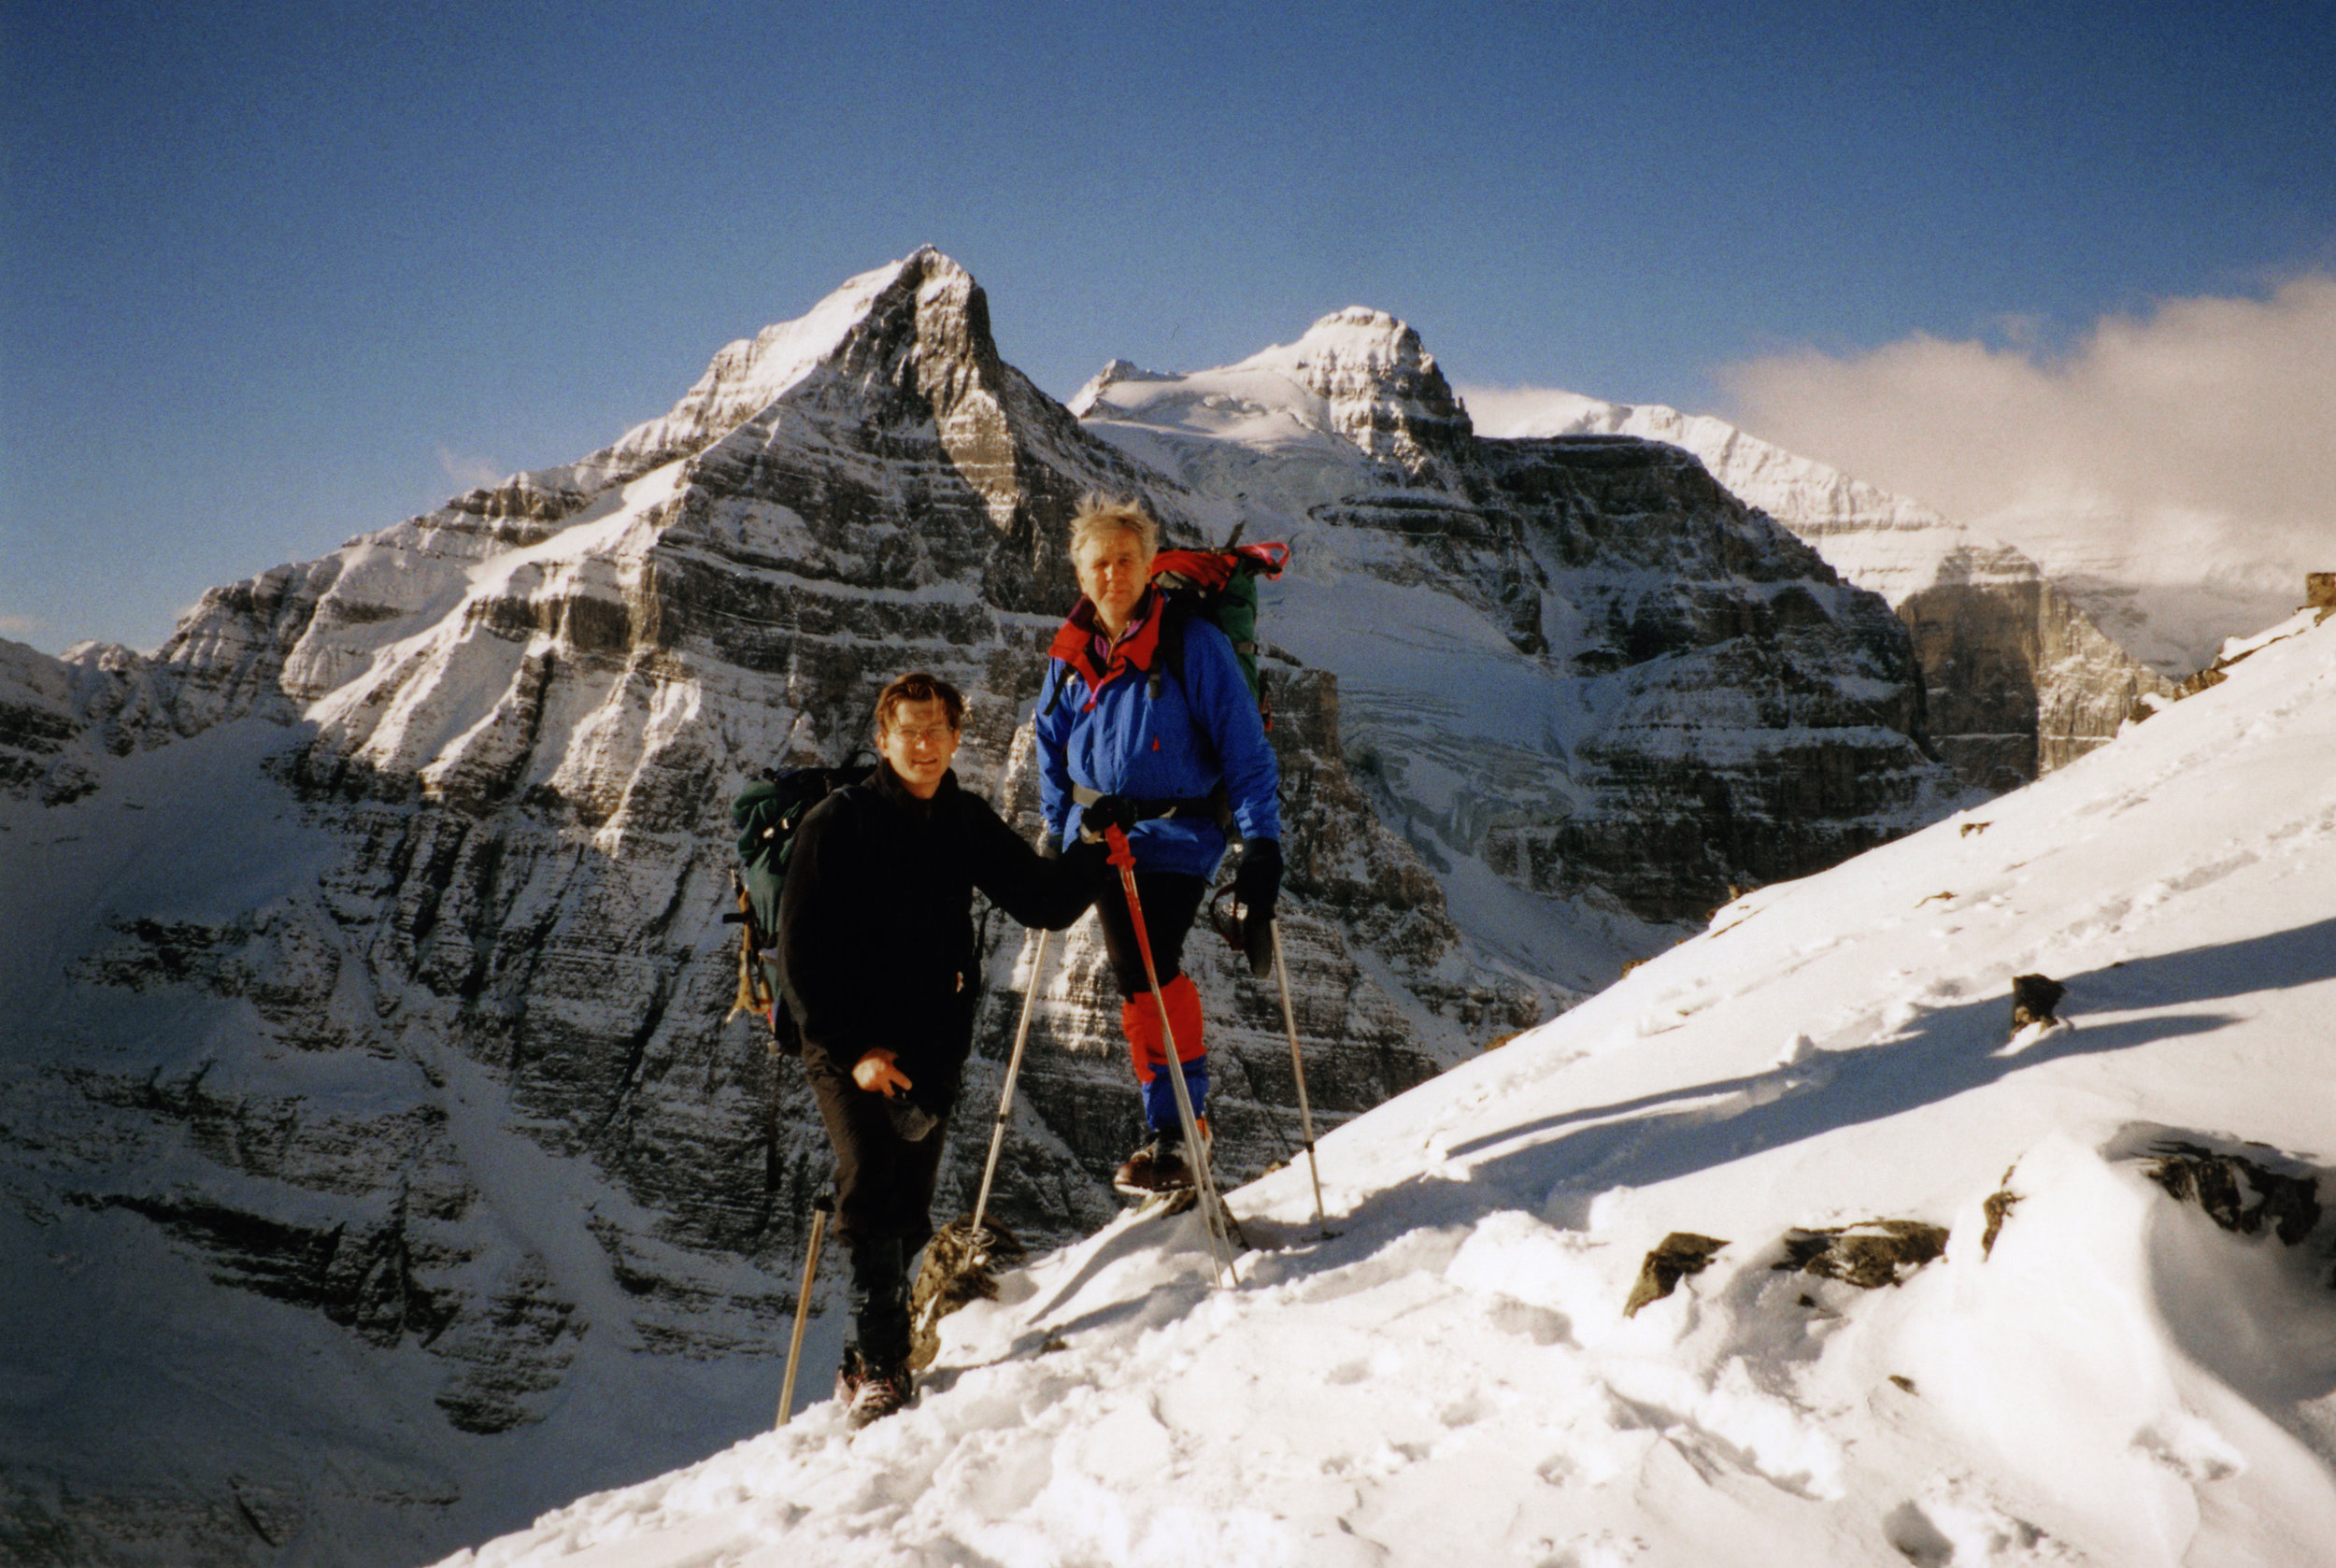 1996, one of my first outings to the fabulous alpine in the Lake Louise area. Mount Aberdeen and Aberdeen Glacier are in the background. Behind Mt. Aberdeen is Mt. Lefroy and Mt. Victoria. Andrzej, the man in the photo with me, is the Polish Himalayan climber from the golden days of Polish alpinism (1980s), full of fantastic stories of, at that time, lands yet to be discovered by me. At that time I could not have possibly imagined in my wildest dreems what would follow and how absolutely fortunate I would be to have the opportunity to do what I am doing. People like Andrzej, among many others have contributed to this wild journey!